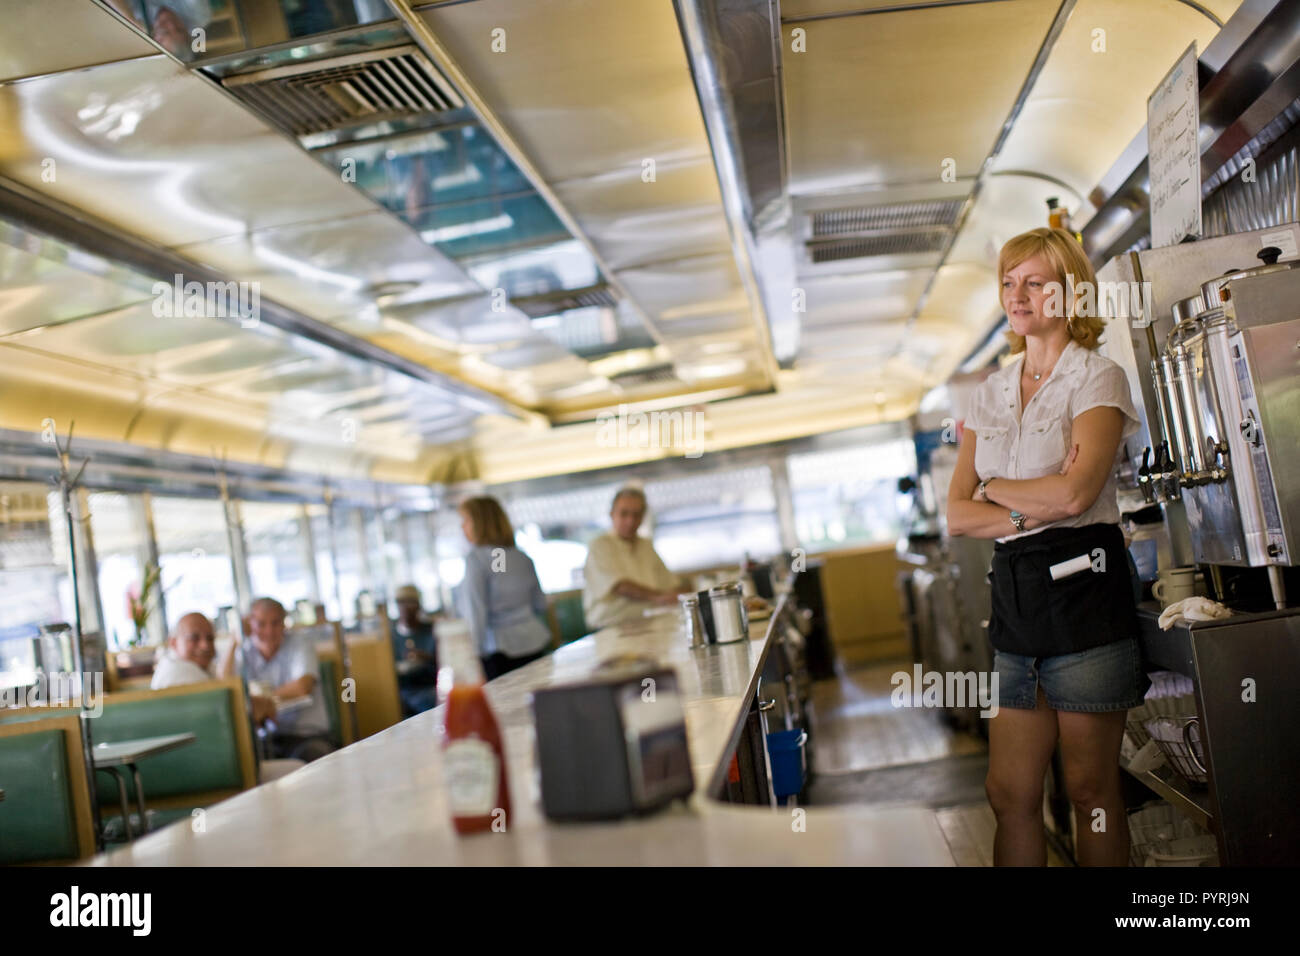 Waitress standing behind counter in old fashioned diner Stock Photo